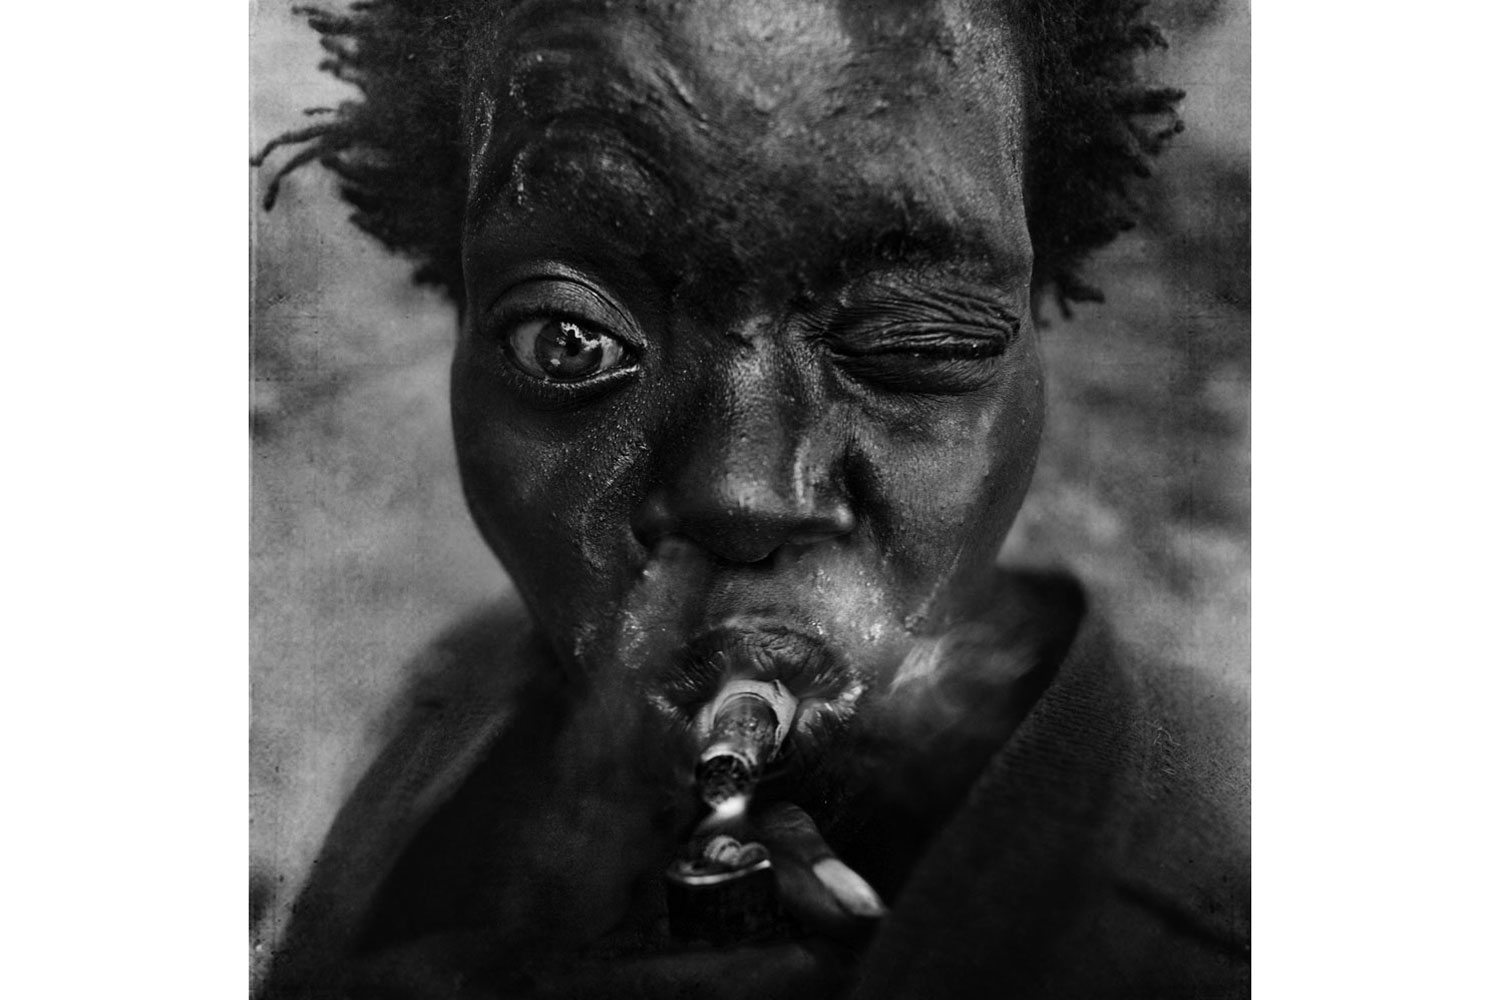 Exhibition. Lee Jeffries,  Homeless.  Museo Di Roma in Trastevere, Trastevere, Italy. On view until January 12, 2014. Pictured: Latoria, Overtown, Miami, Florida. February 6, 2012.